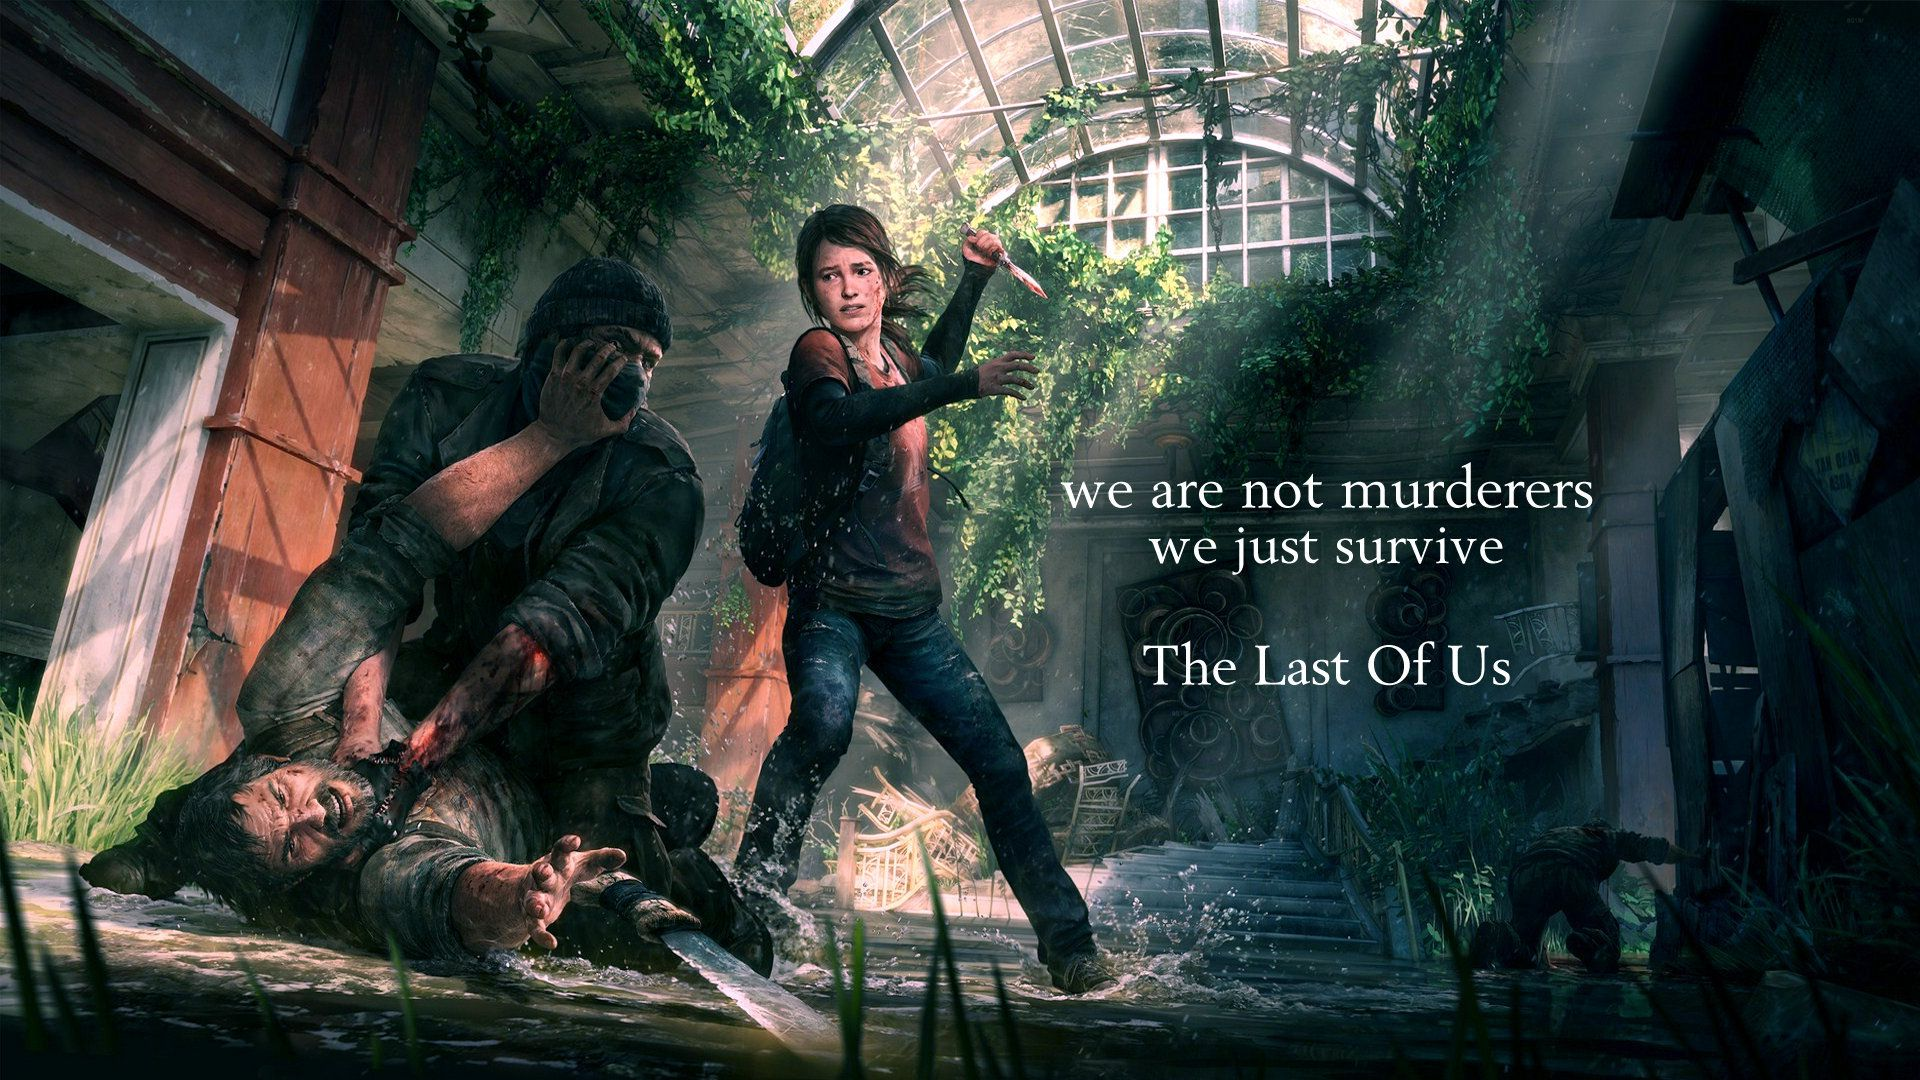 The Last Of Us Wallpaper Hd The Last Of Us